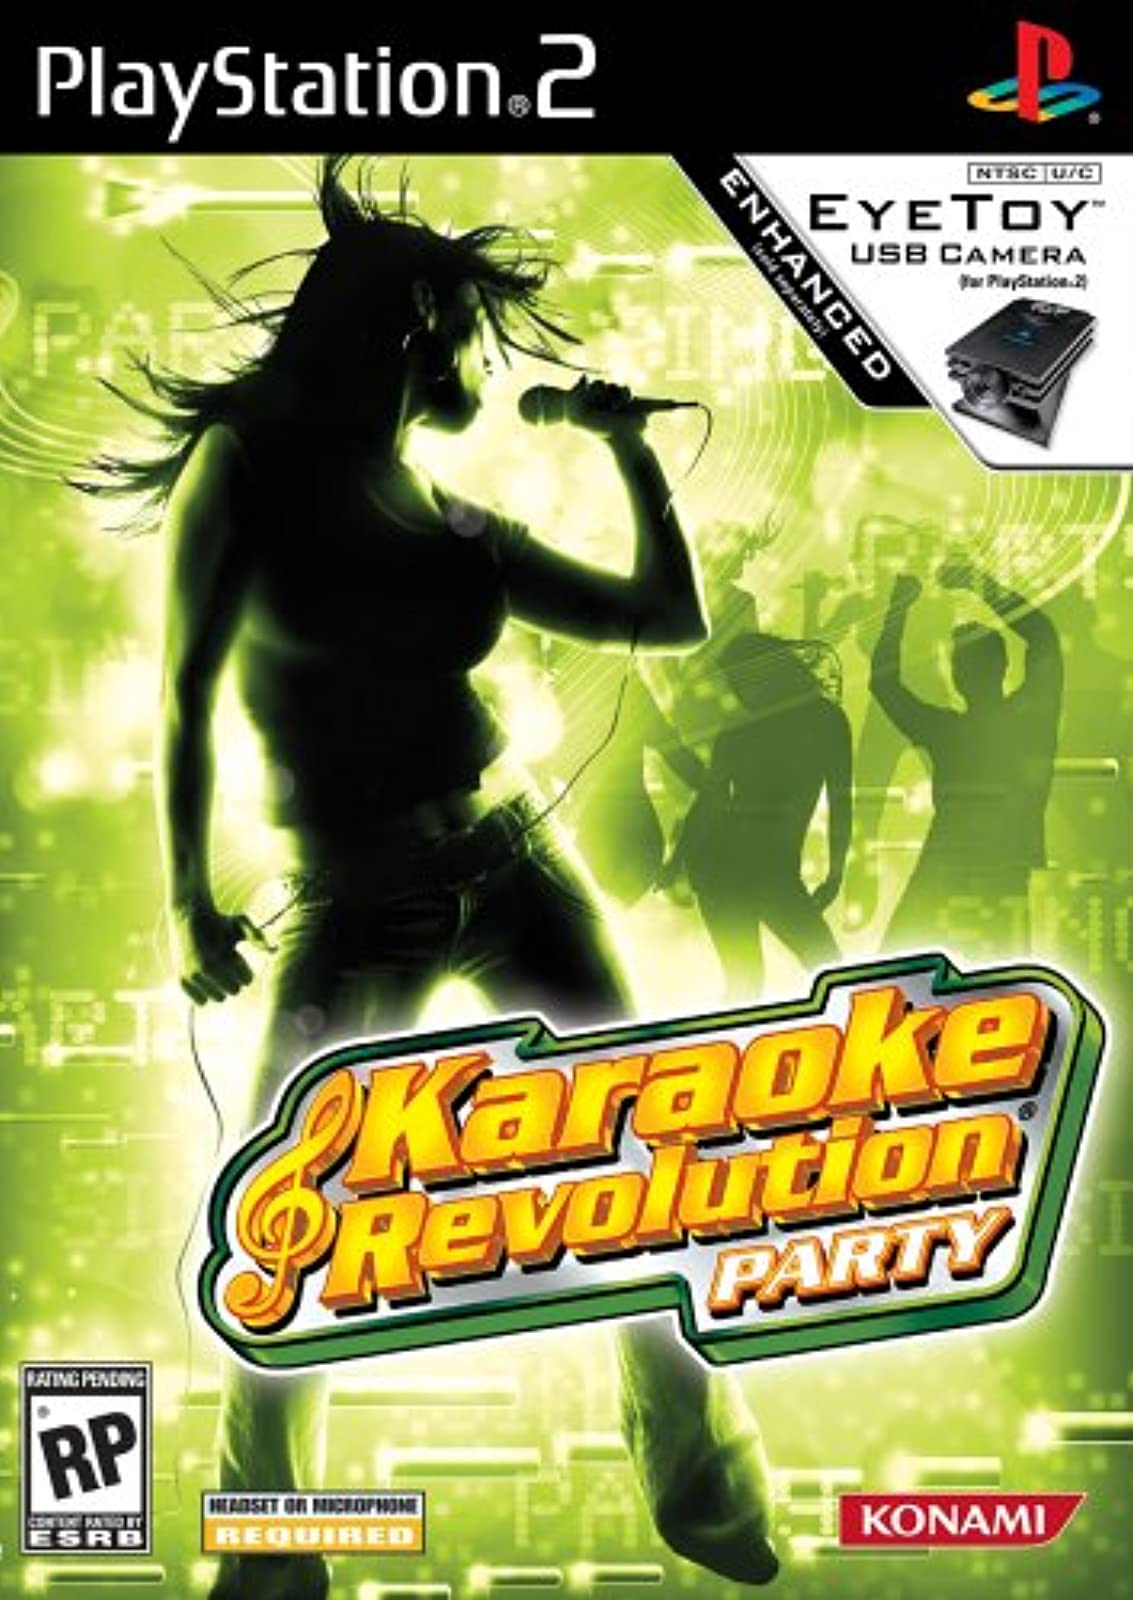 Karaoke Revolution Party For PlayStation 2 PS2 Music